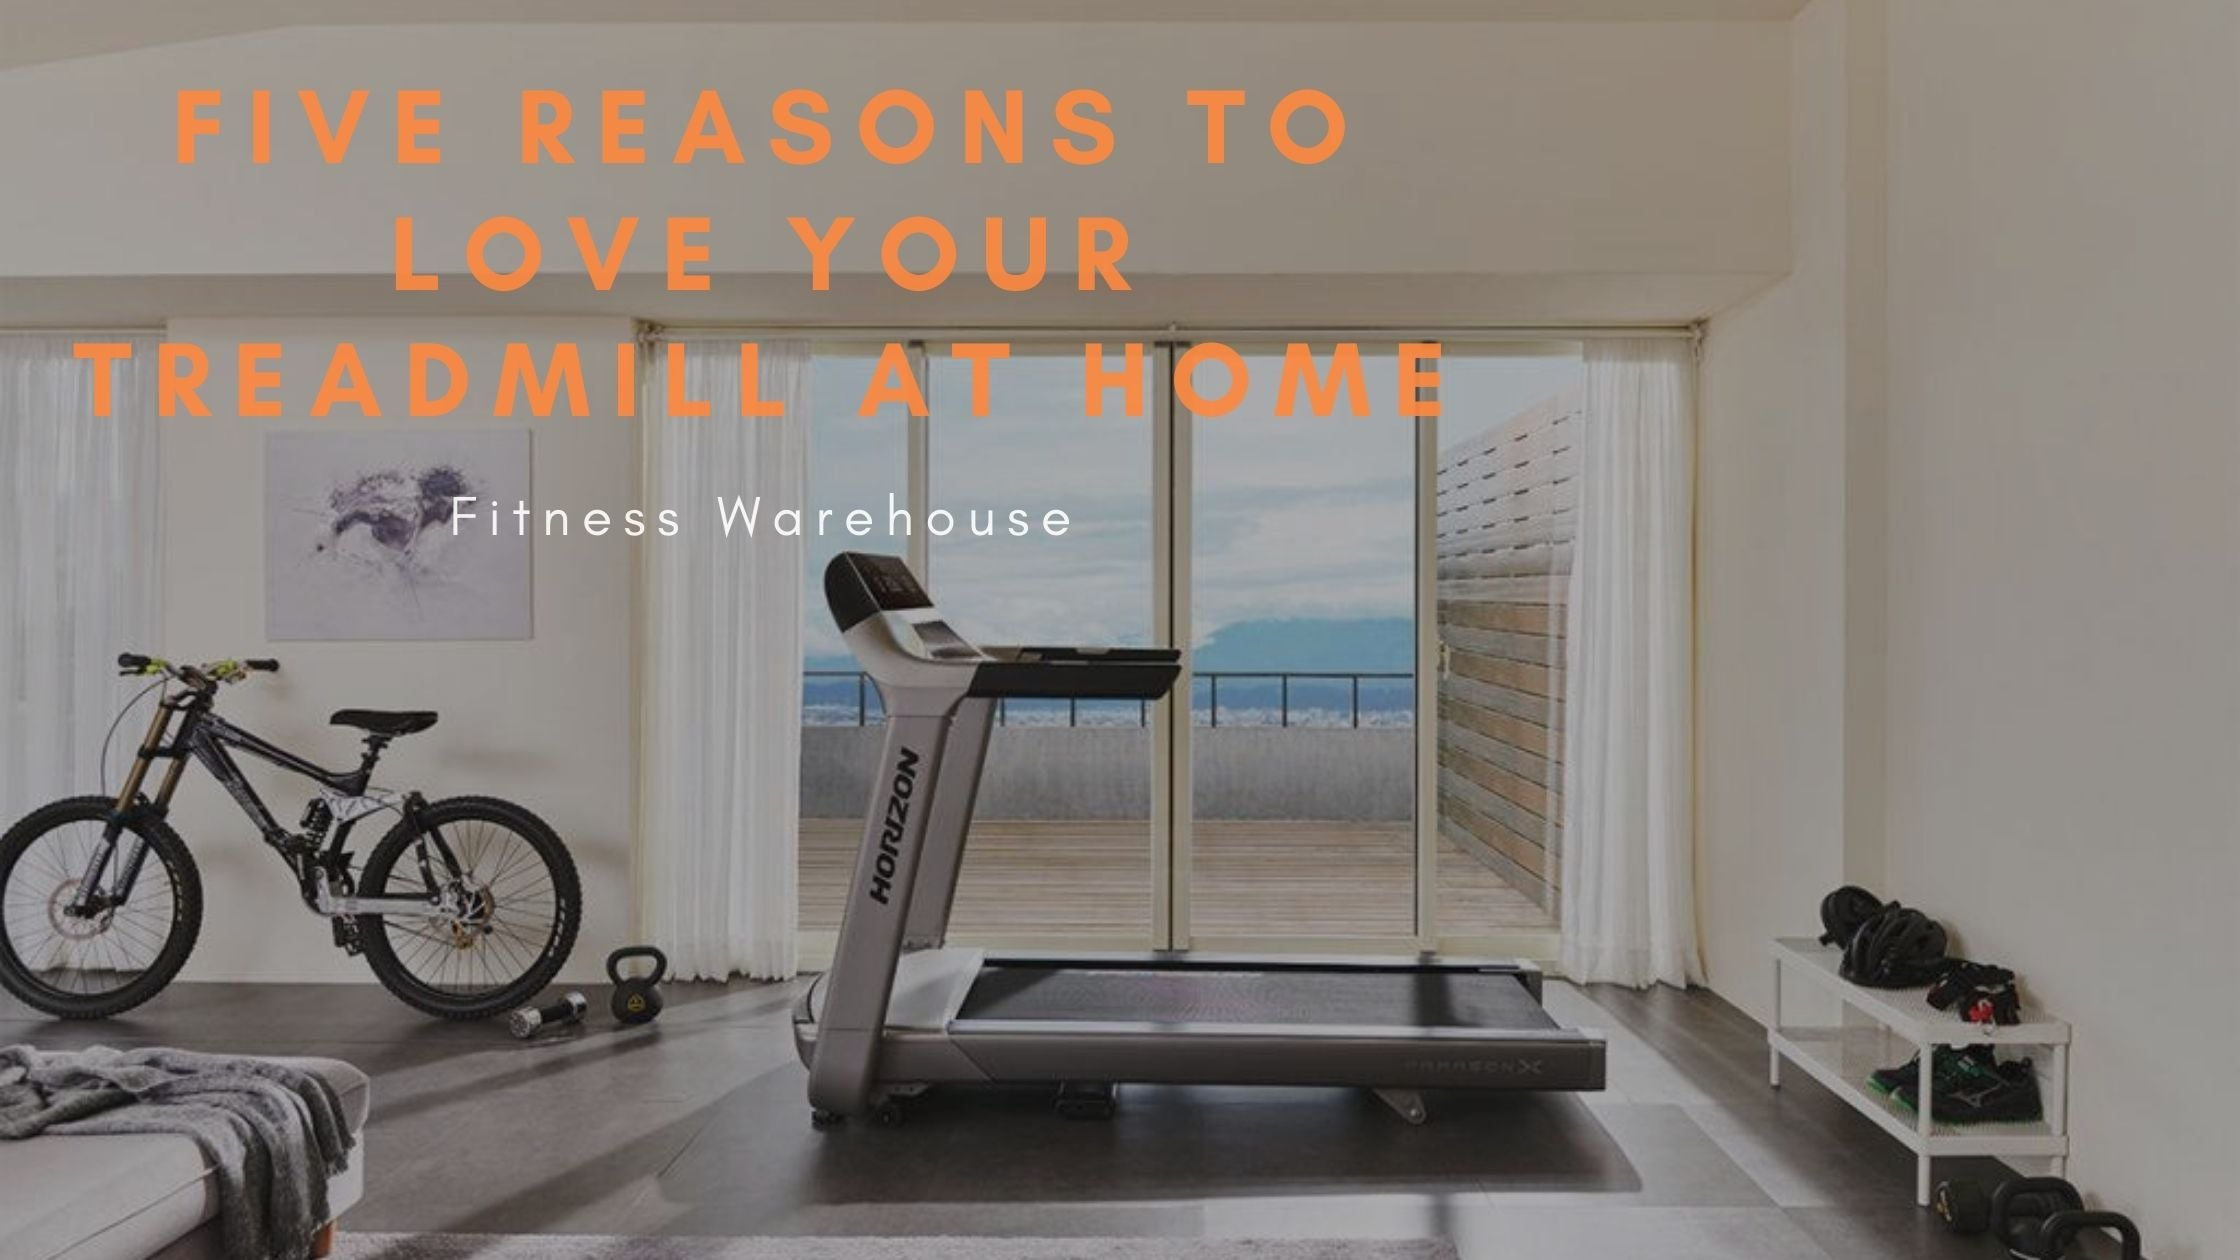 5 reasons to love your Treadmill at home